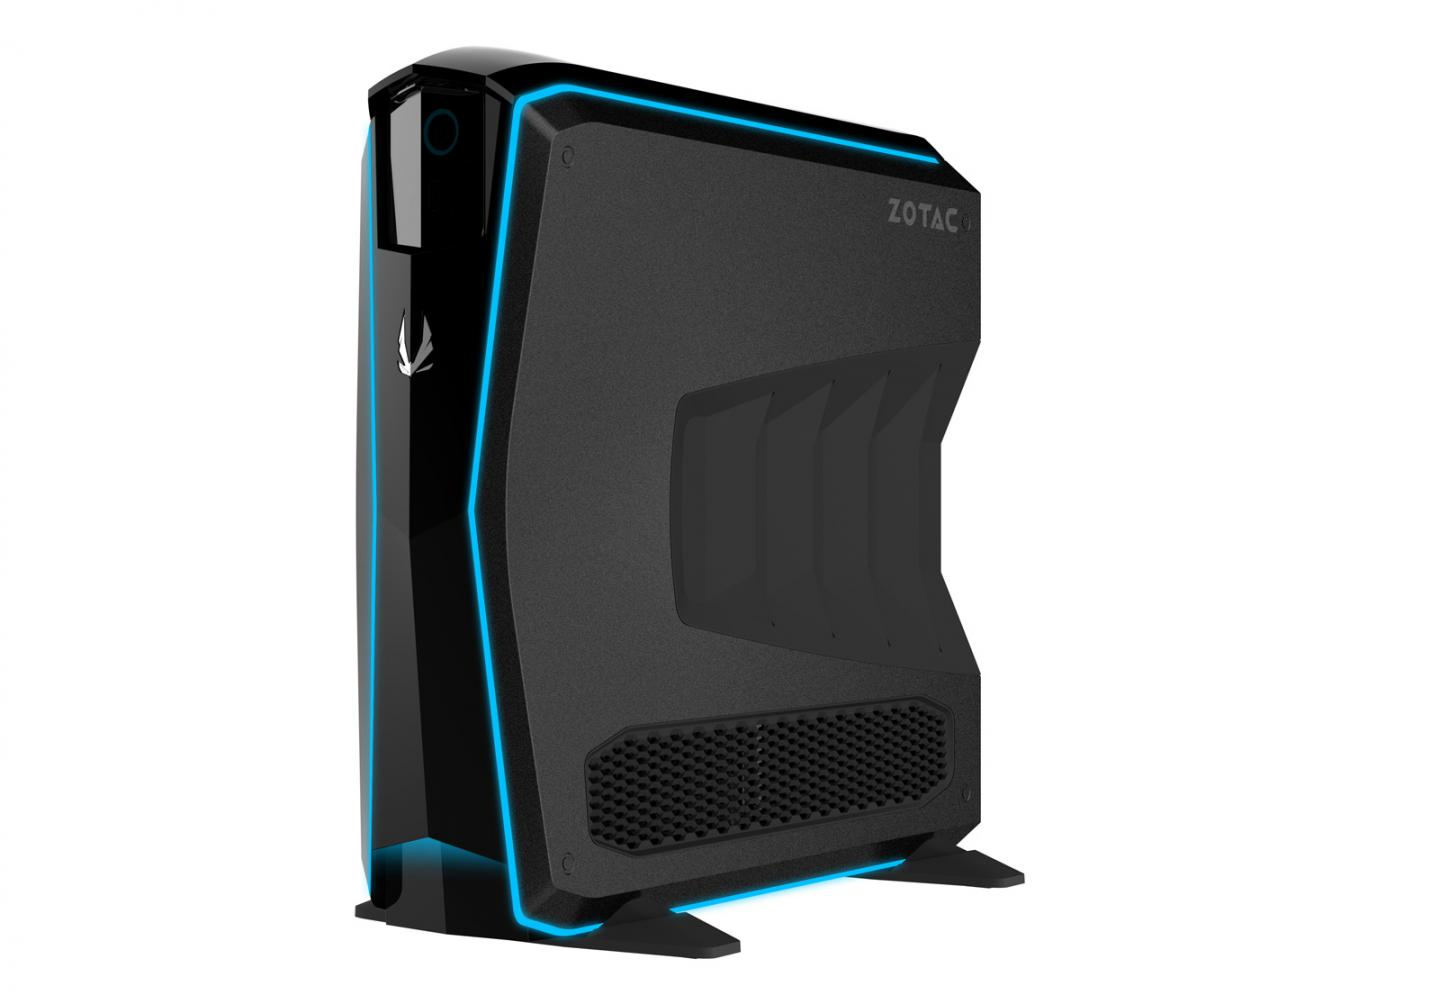 ZOTAC Launches ZOTAC Gaming Brand and Releases MEK1 Gaming PC